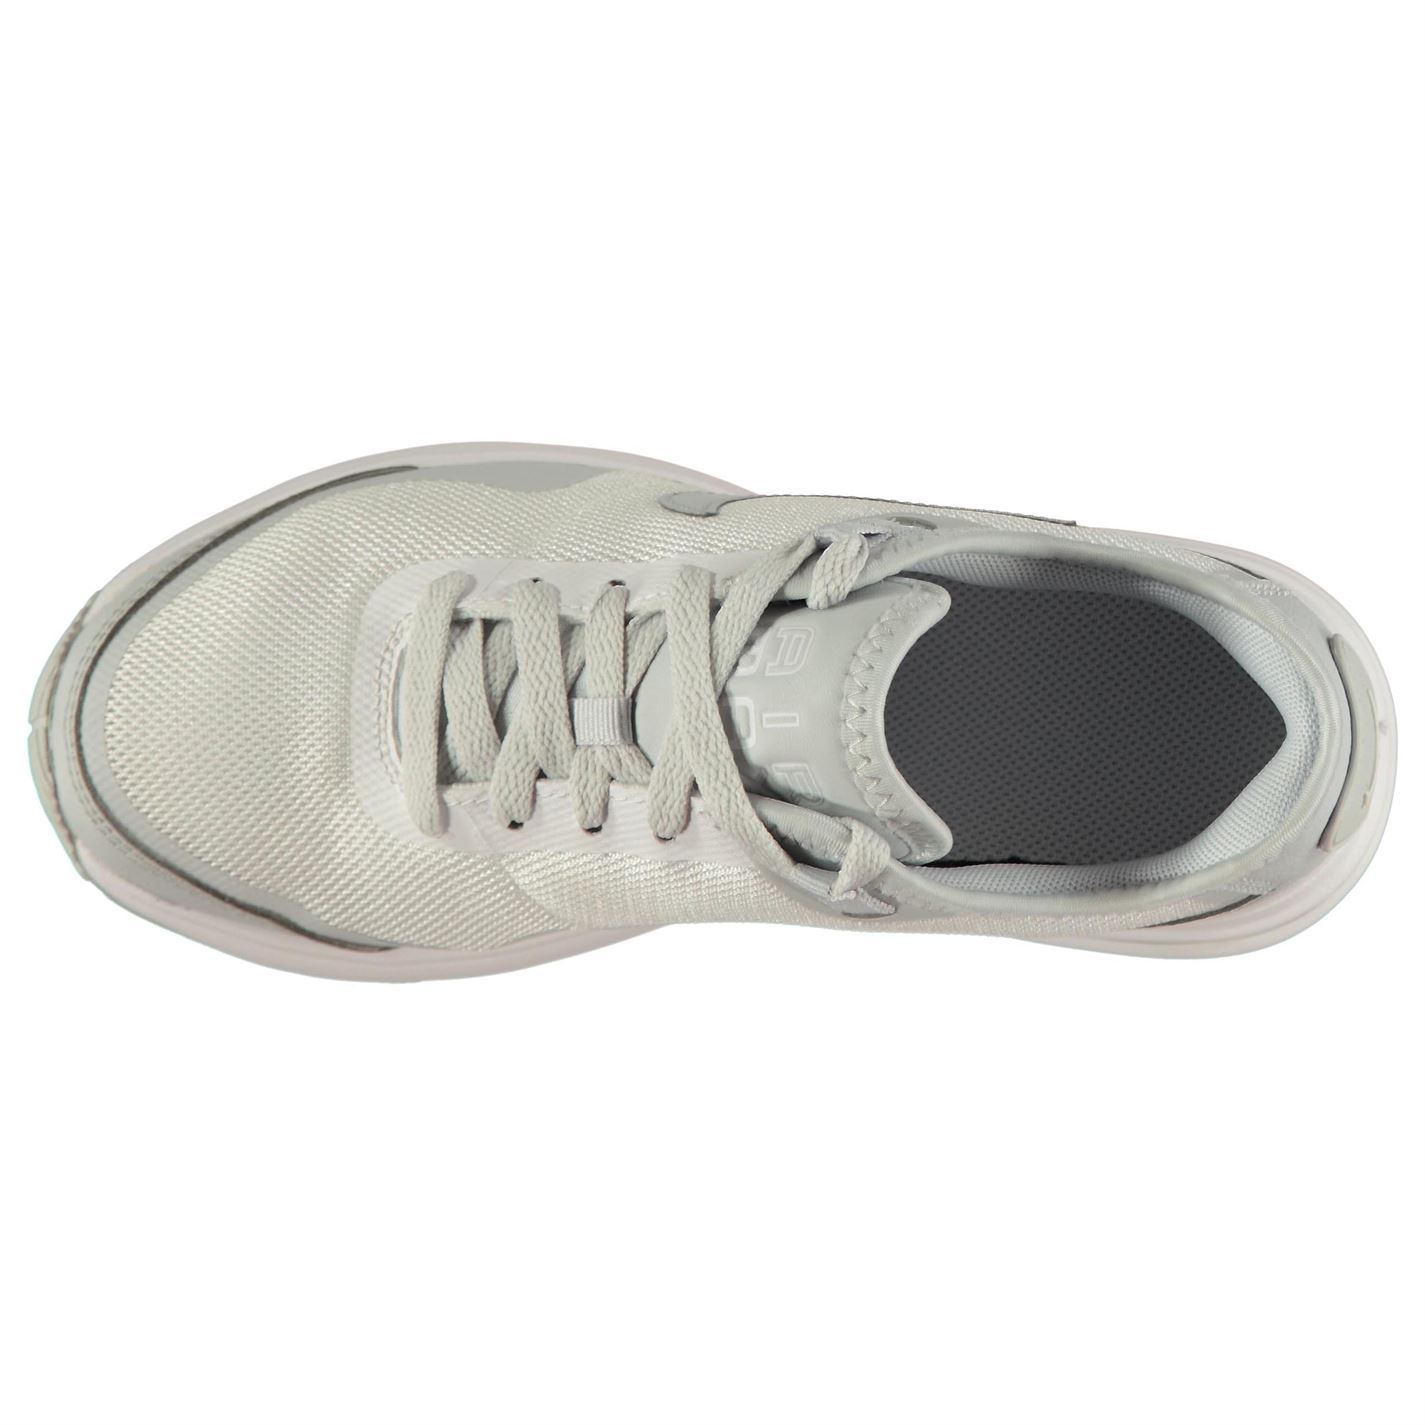 30a86f0ebef1 ... Nike Air Max LB Trainers Junior Boys White Shoes Footwear